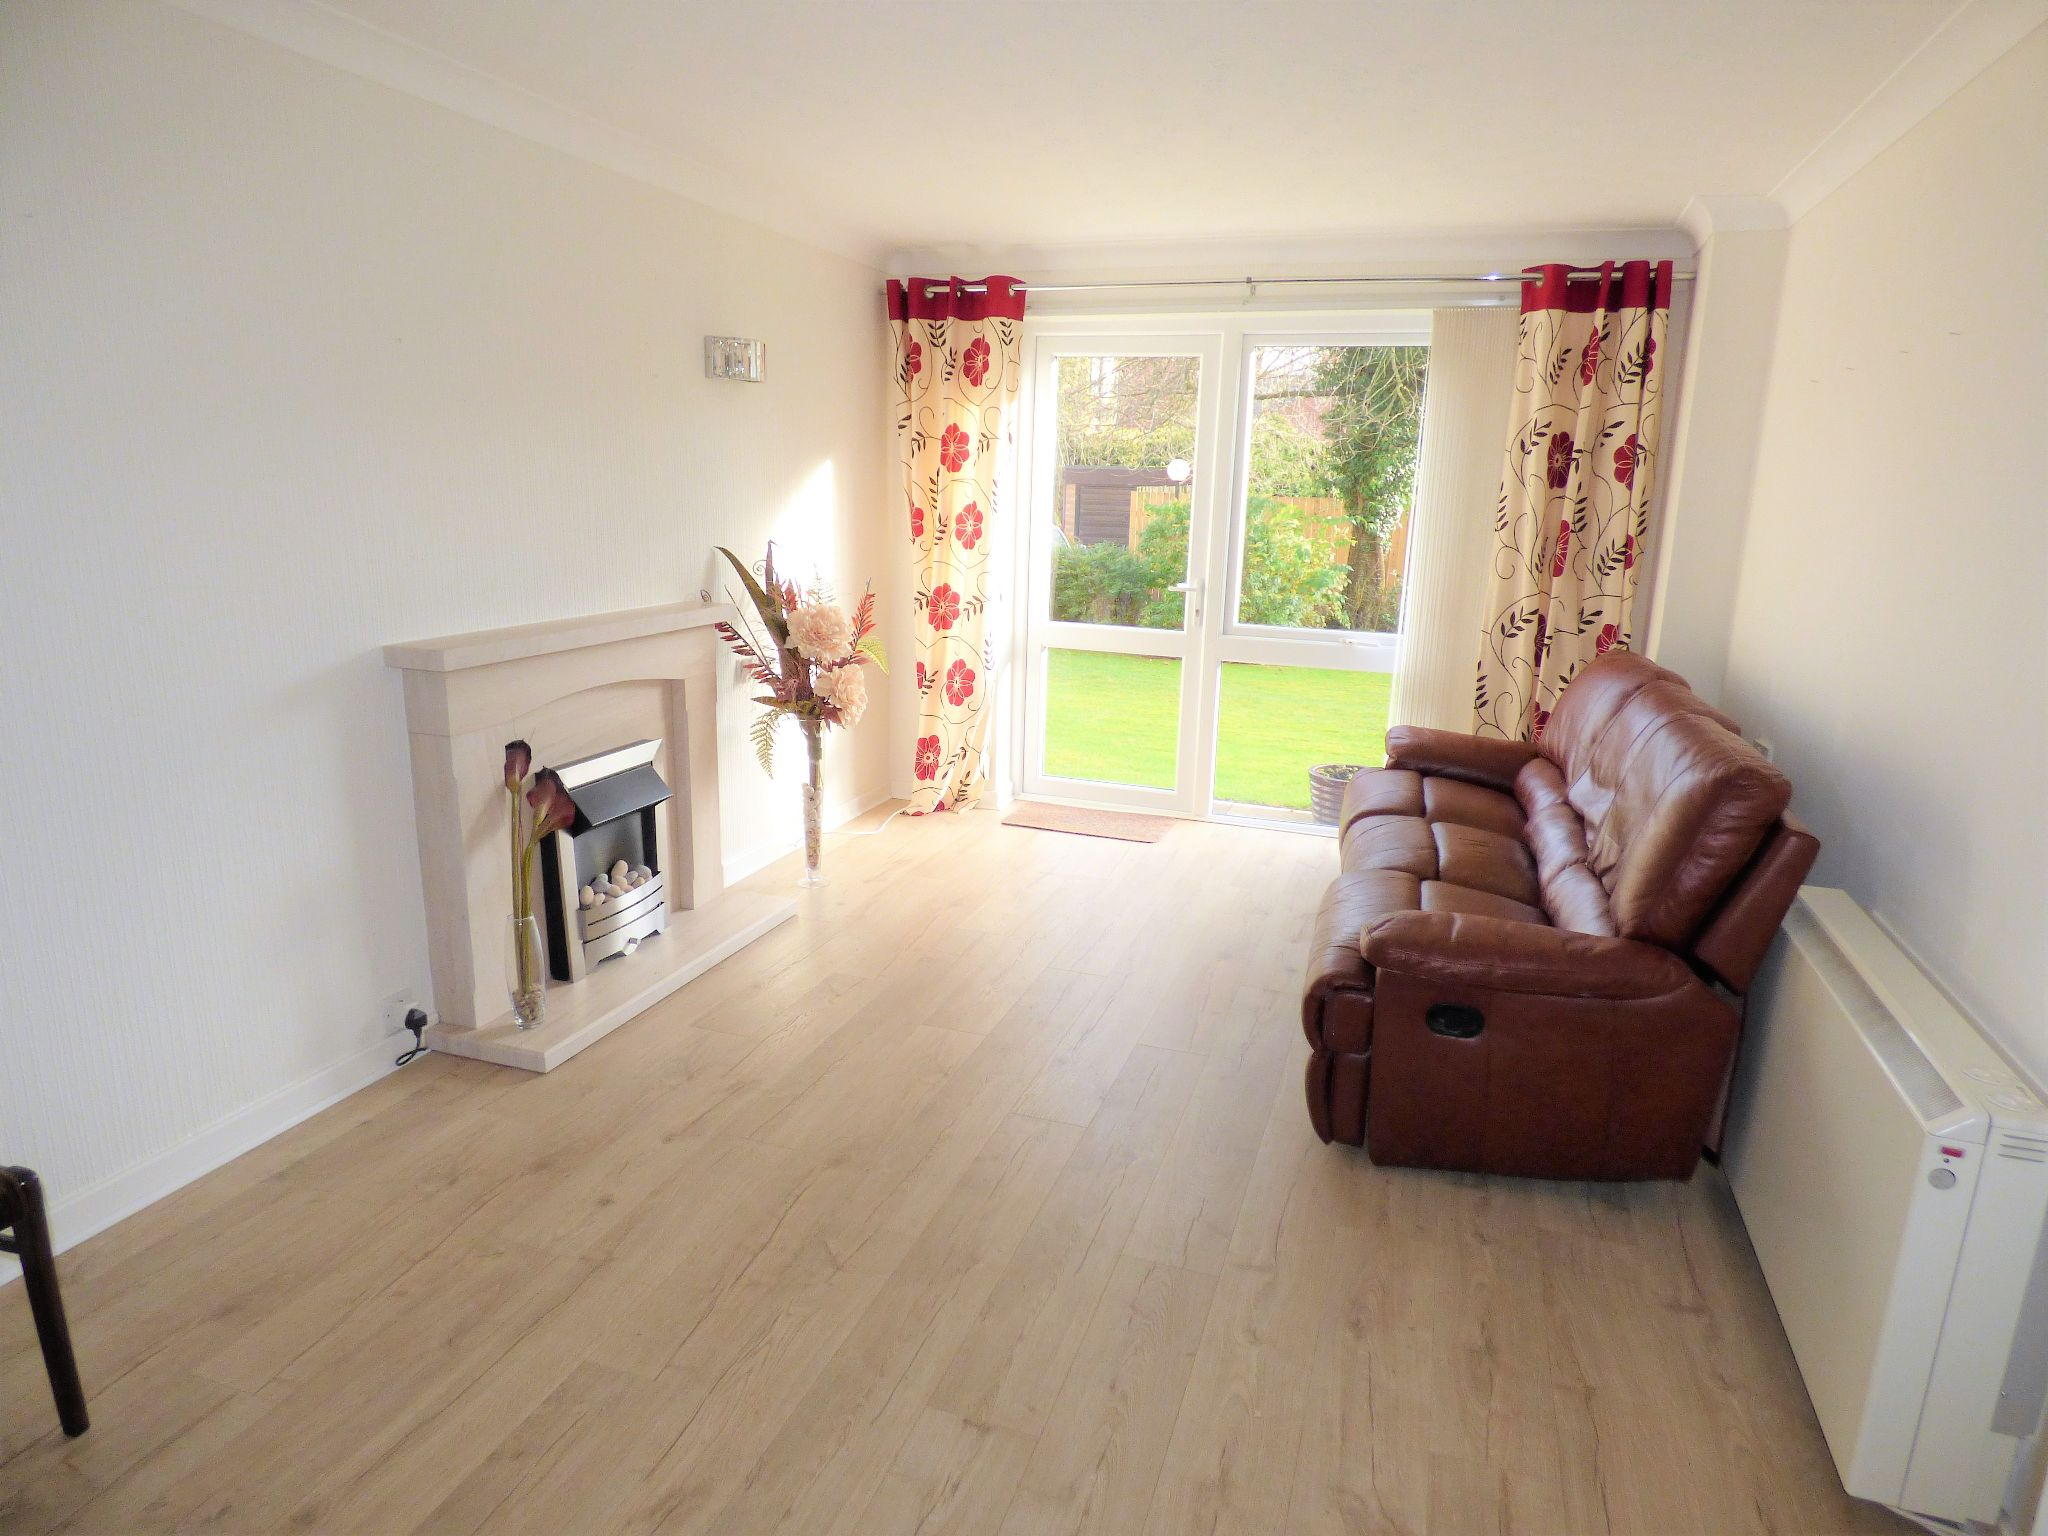 1 Bedroom Flat Flat/apartment For Sale - Photograph 2